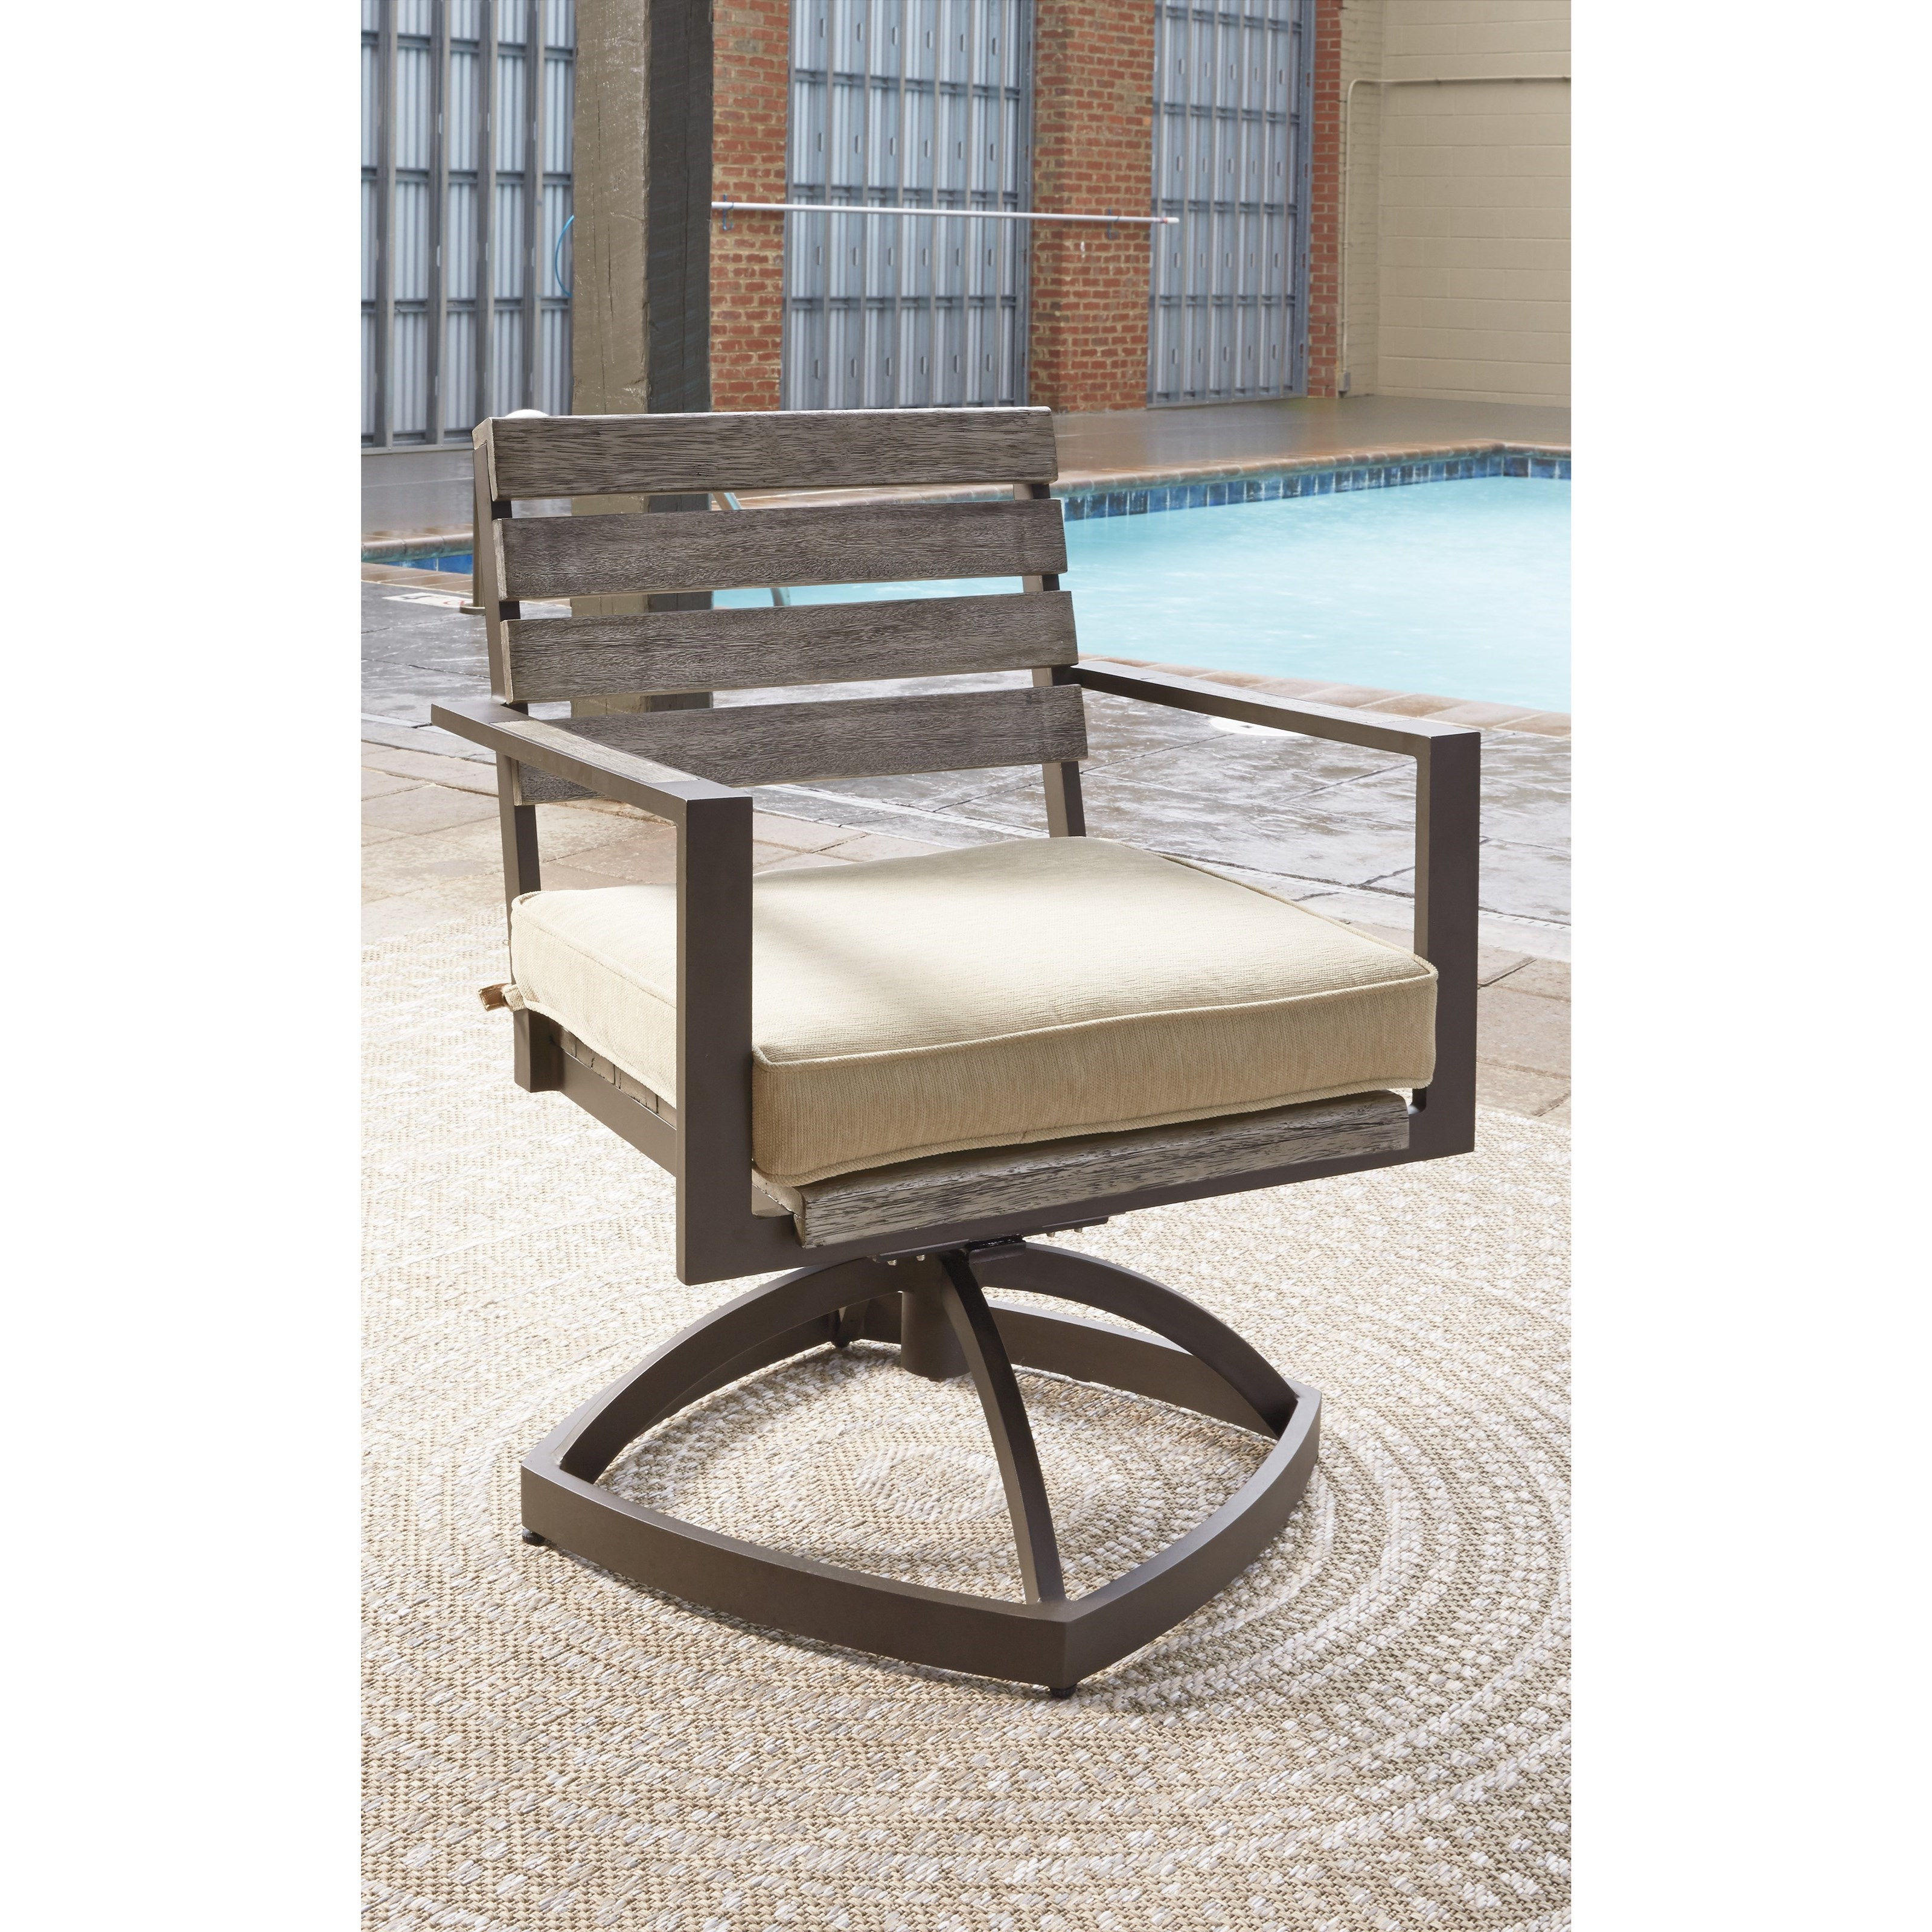 Outdoor Patio Furniture York Pa: Outdoor Swivel Chair W/ Cushion By Signature Design By